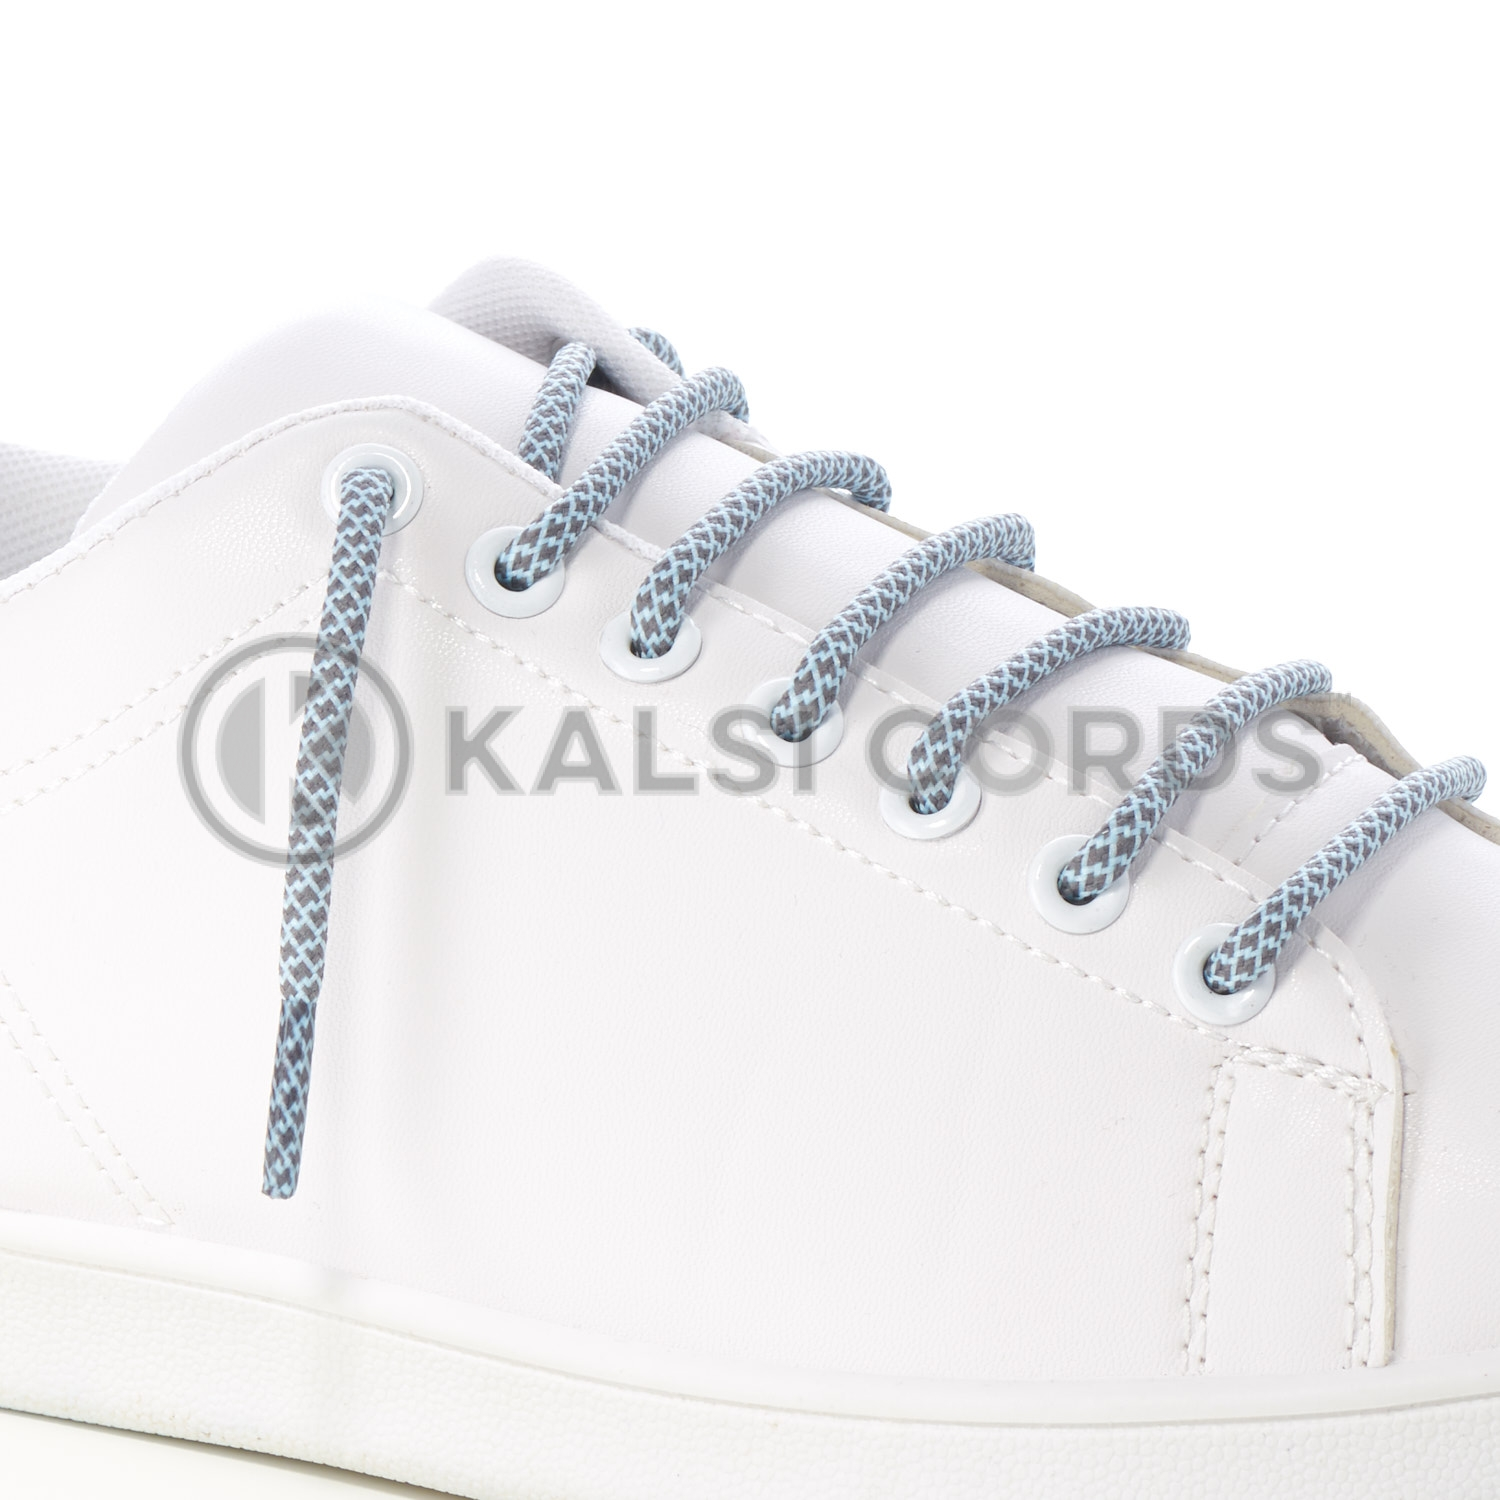 T655 5mm Round Cord Honeycomb Shoe Lace Grey Baby Blue Kids Trainers Adults Adidas Yeezy Boost Hiking Walking Boots Kalsi Cords